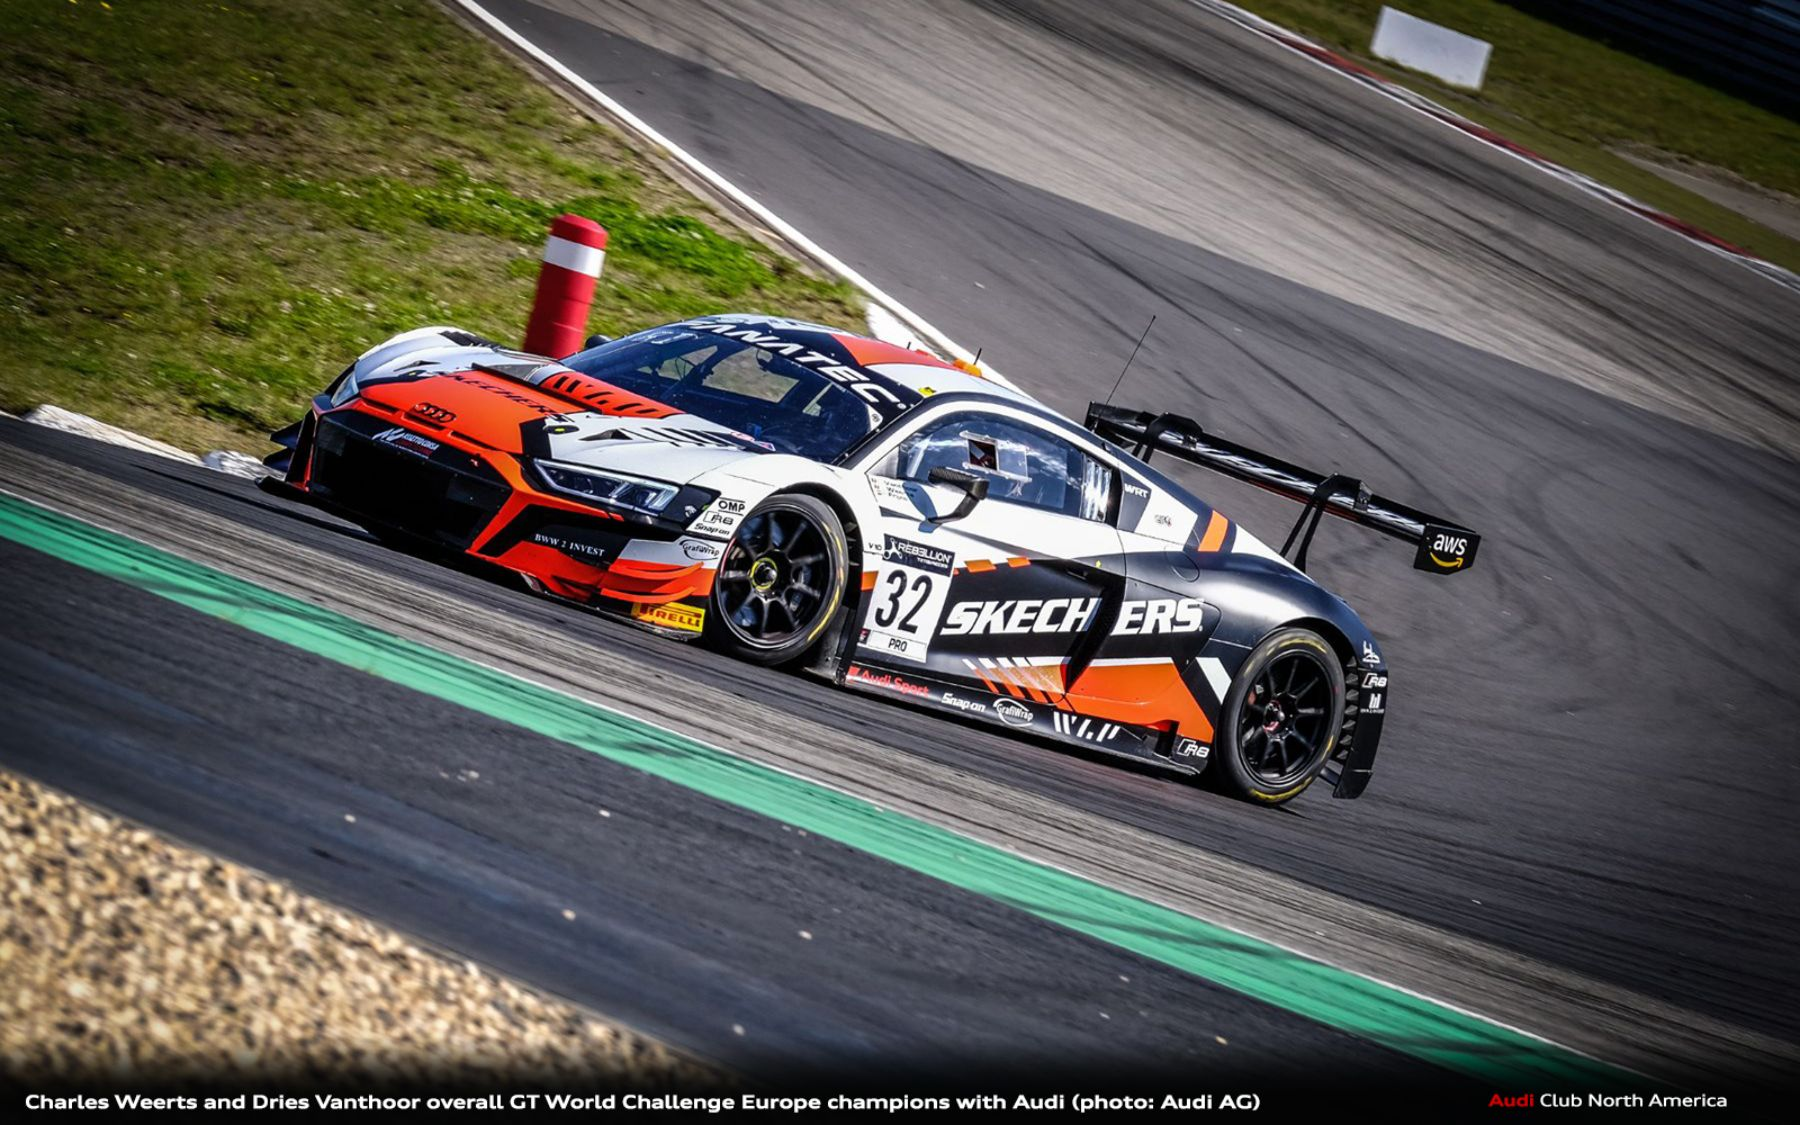 Charles Weerts and Dries Vanthoor Overall GT World Challenge Europe Champions with Audi